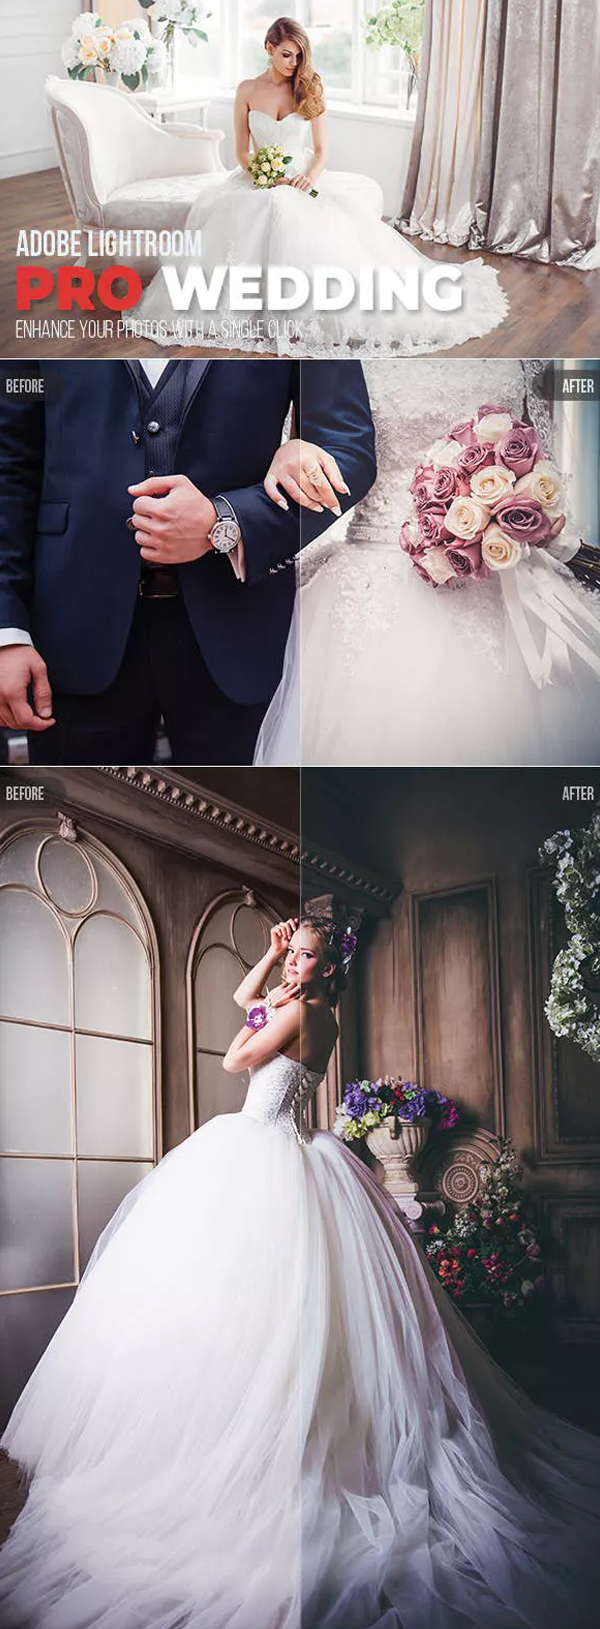 Pro Wedding Lightroom Preset